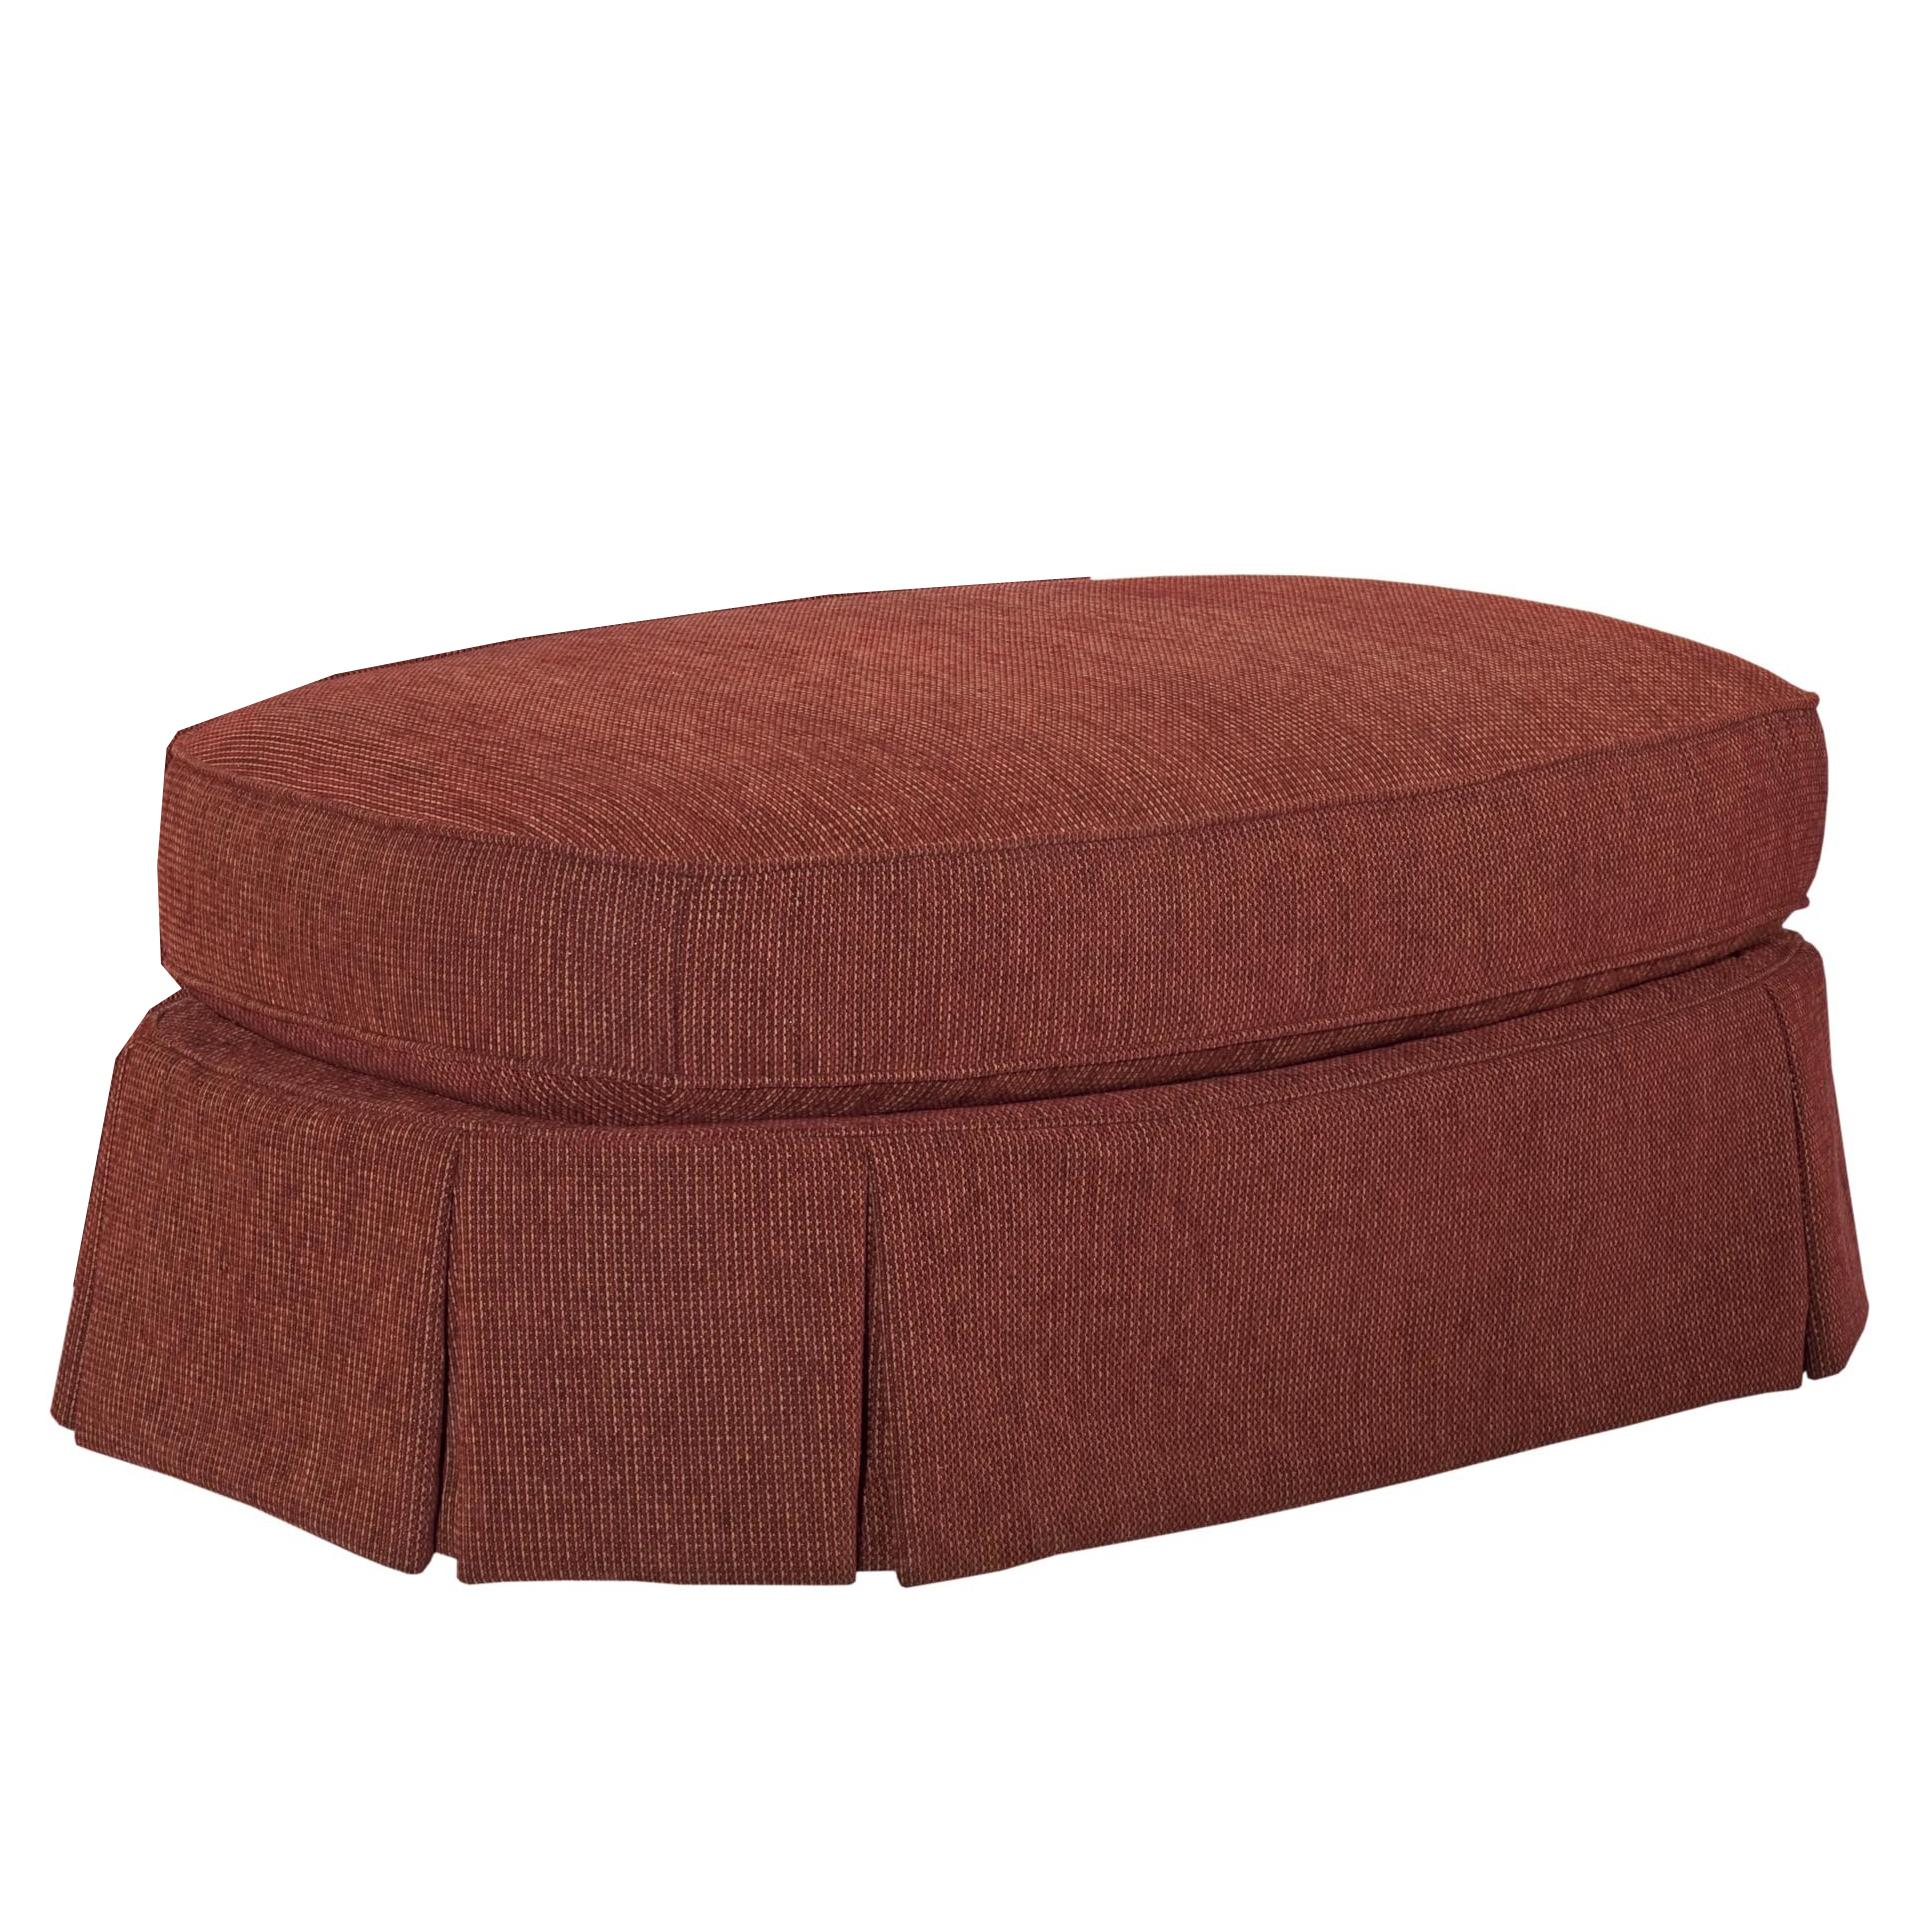 Broyhill Furniture McKinney Oval Ottoman - Item Number: 6544-5